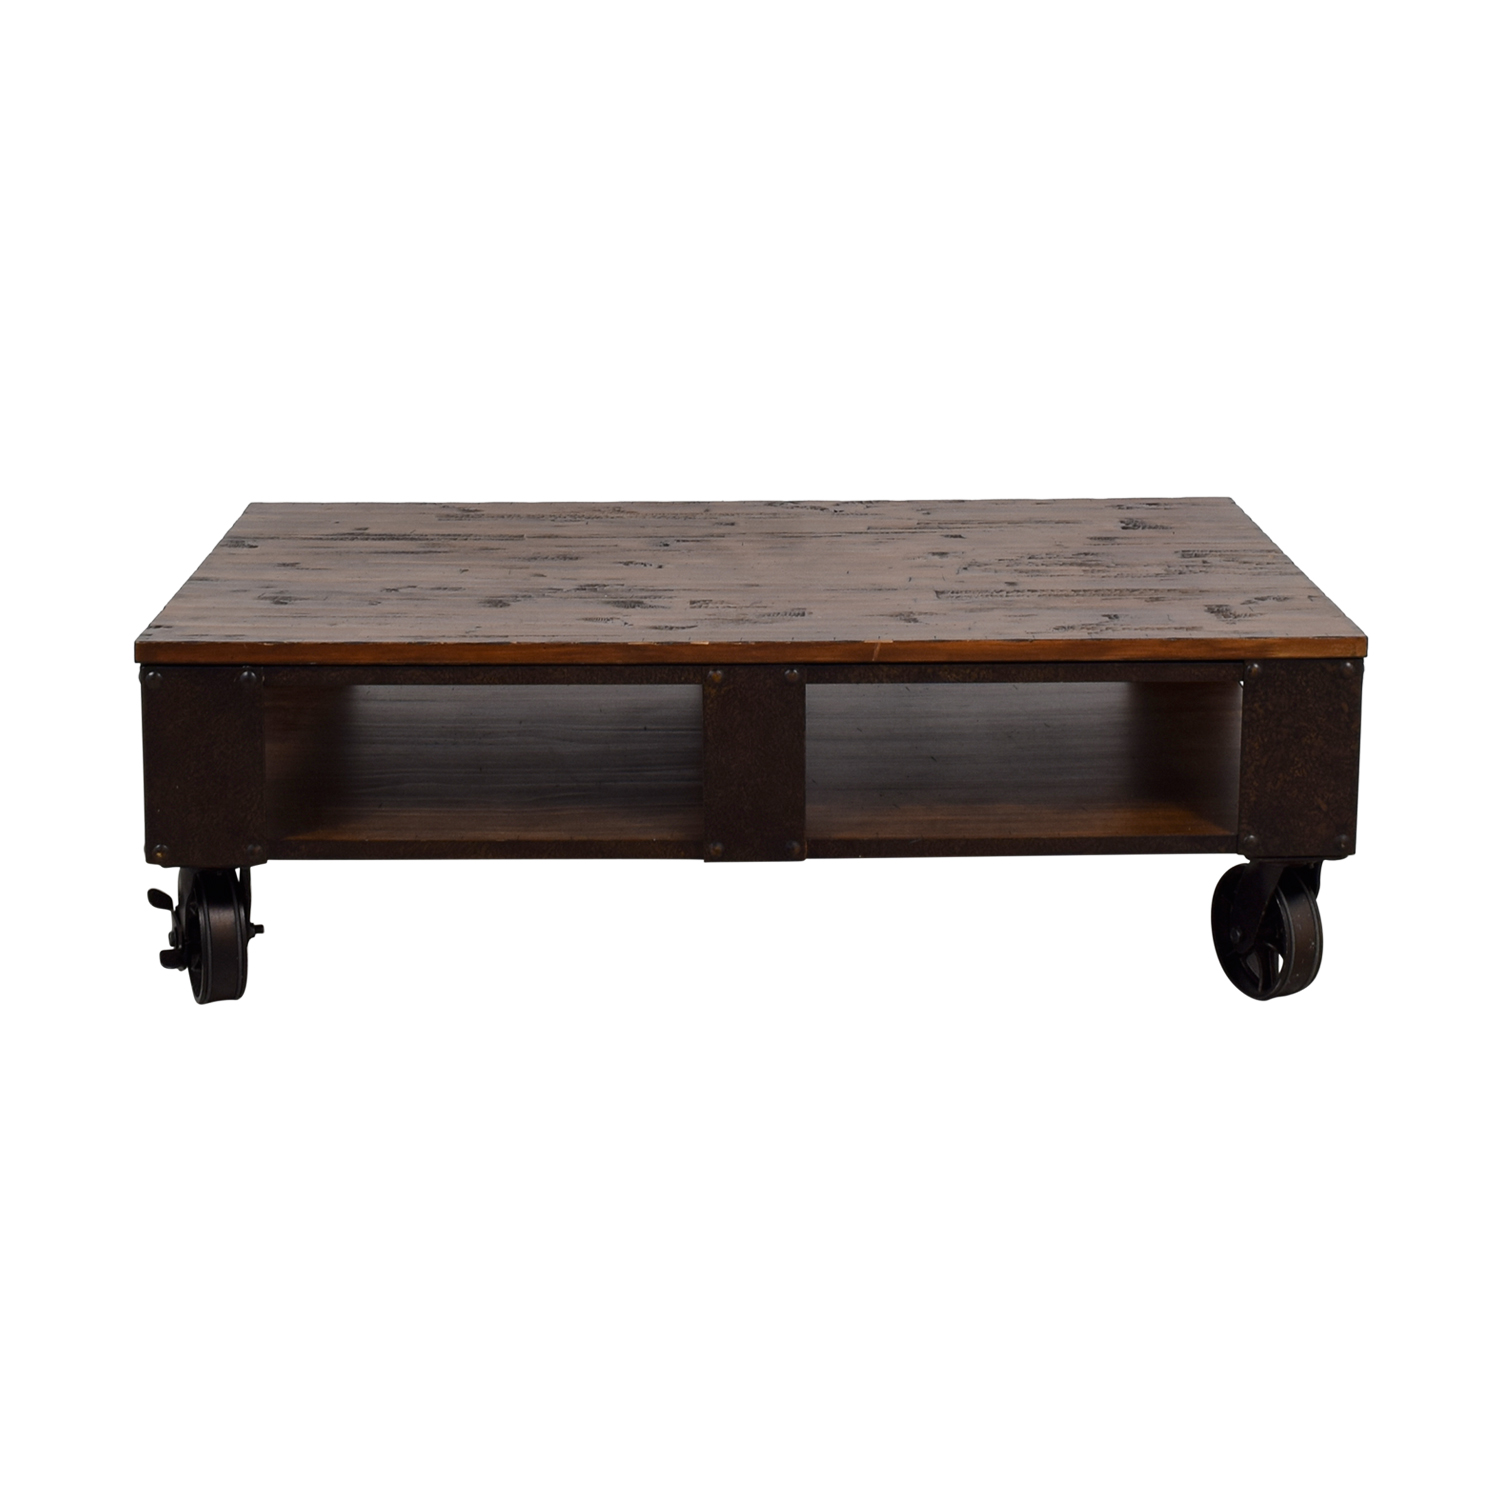 Magnussen Magnussen T1755 Pinebrook Distressed Natural Pine Wood Rectangular Cocktail Table